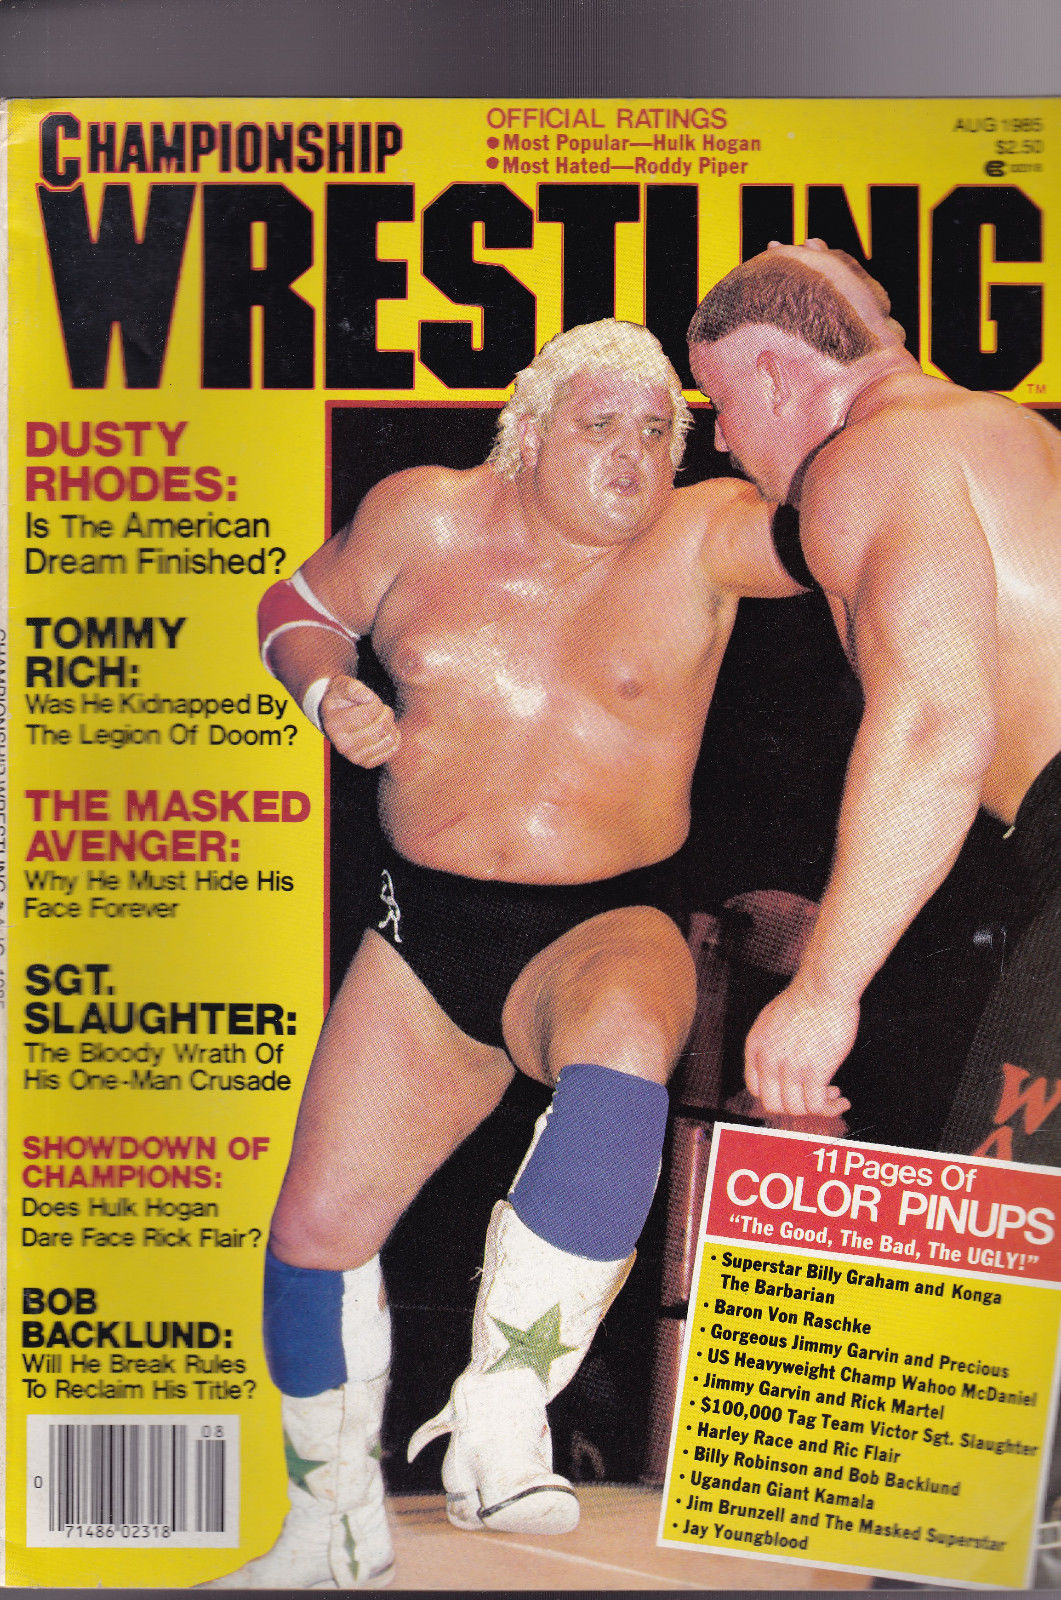 Championship Wrestling - August 1985